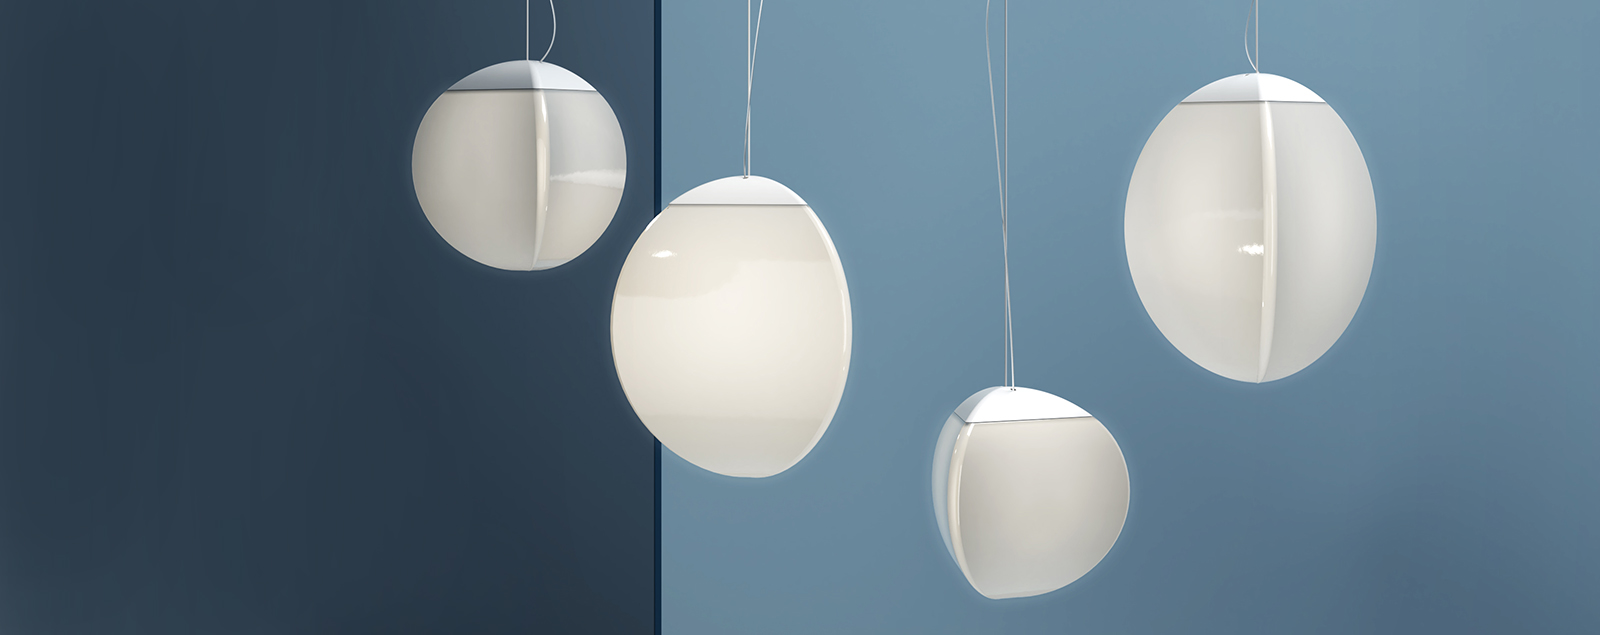 Lighting fixtures modern lights lamps design fabbian